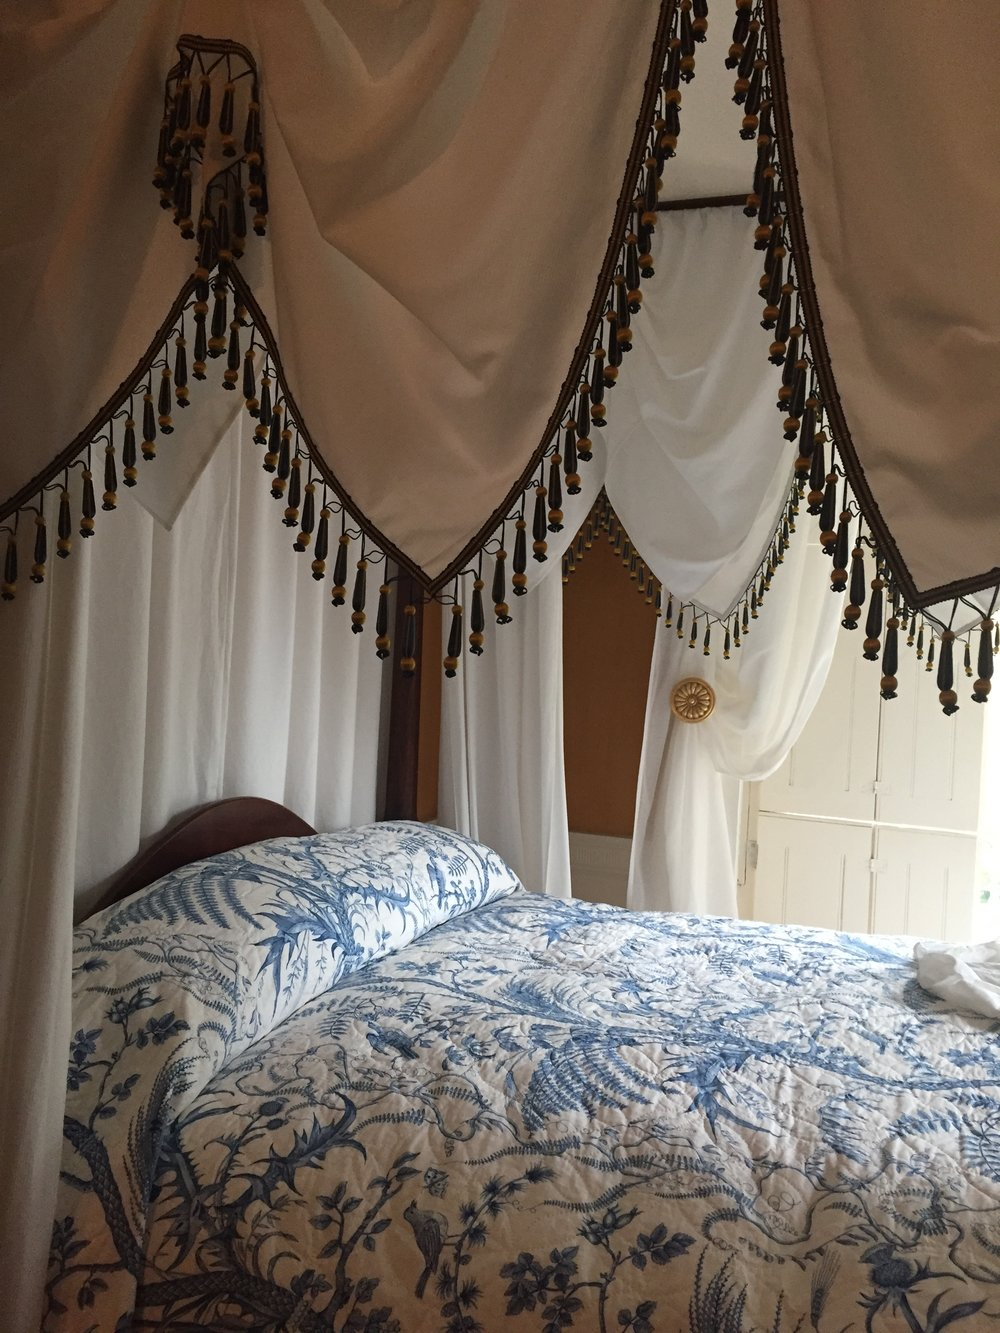 Georgian style four poster bed with upholstery hangings for ornate and warmth purposes.